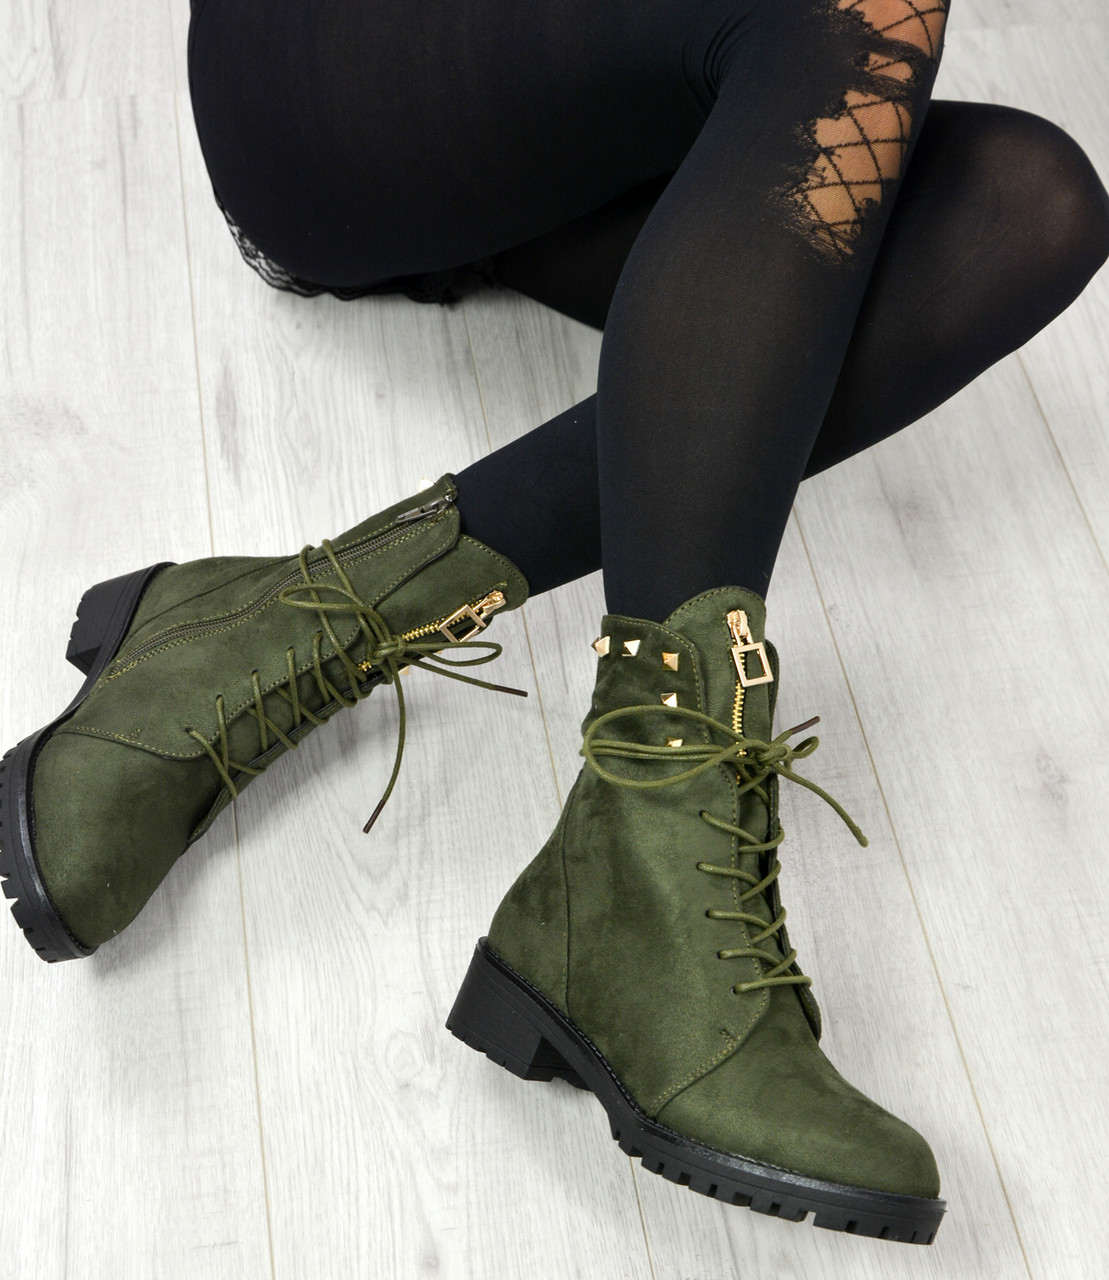 ecd1cd452a8 Brand New Womens Biker Boots Ladies Girls High Block Heels Spike ...